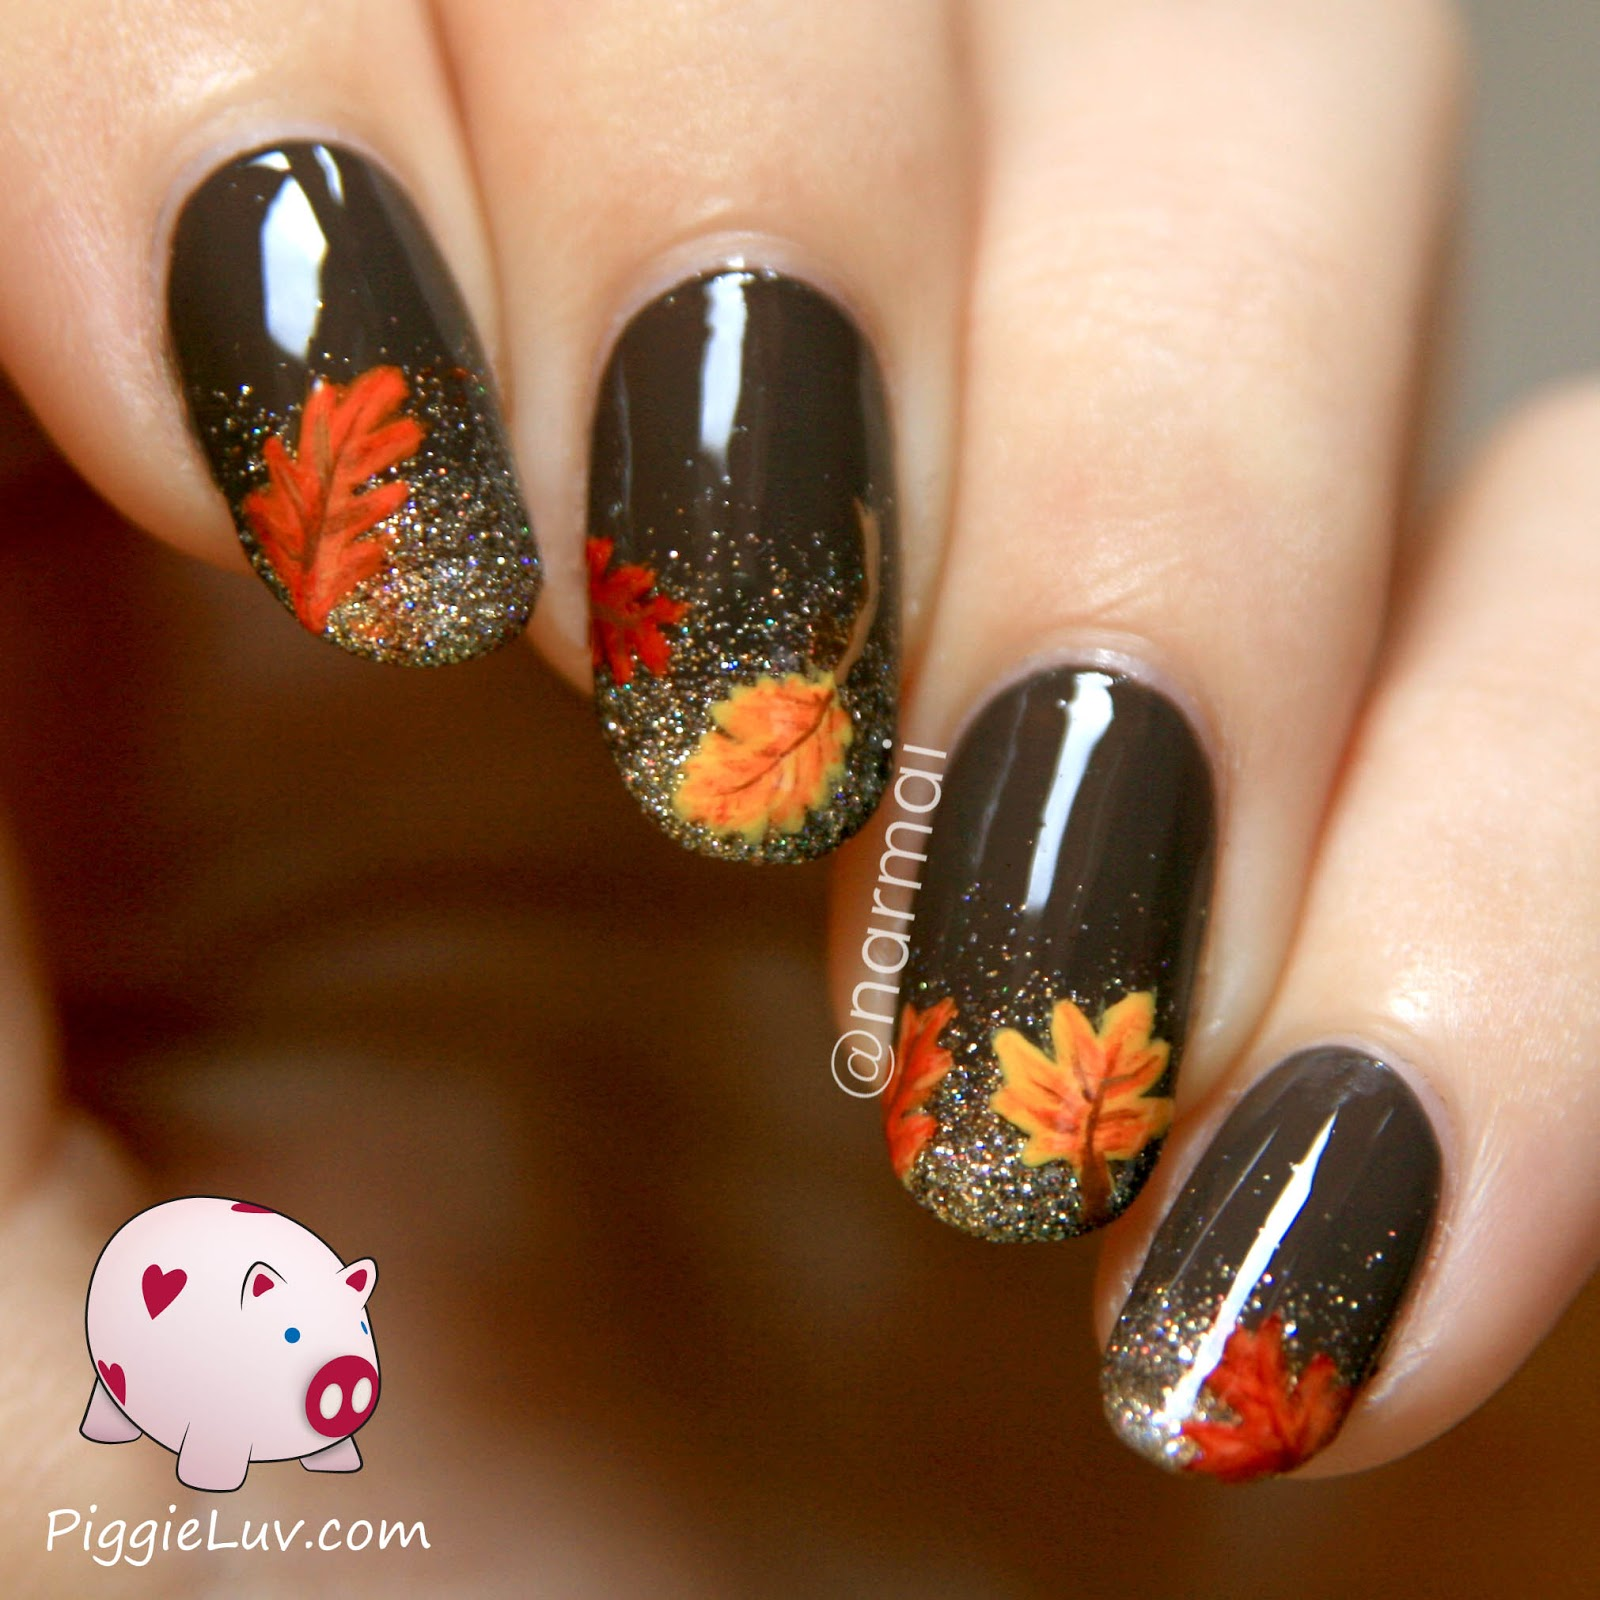 nail designs for fall 2014. fall nail art! autumn leaves on glitter gradient designs for 2014 s